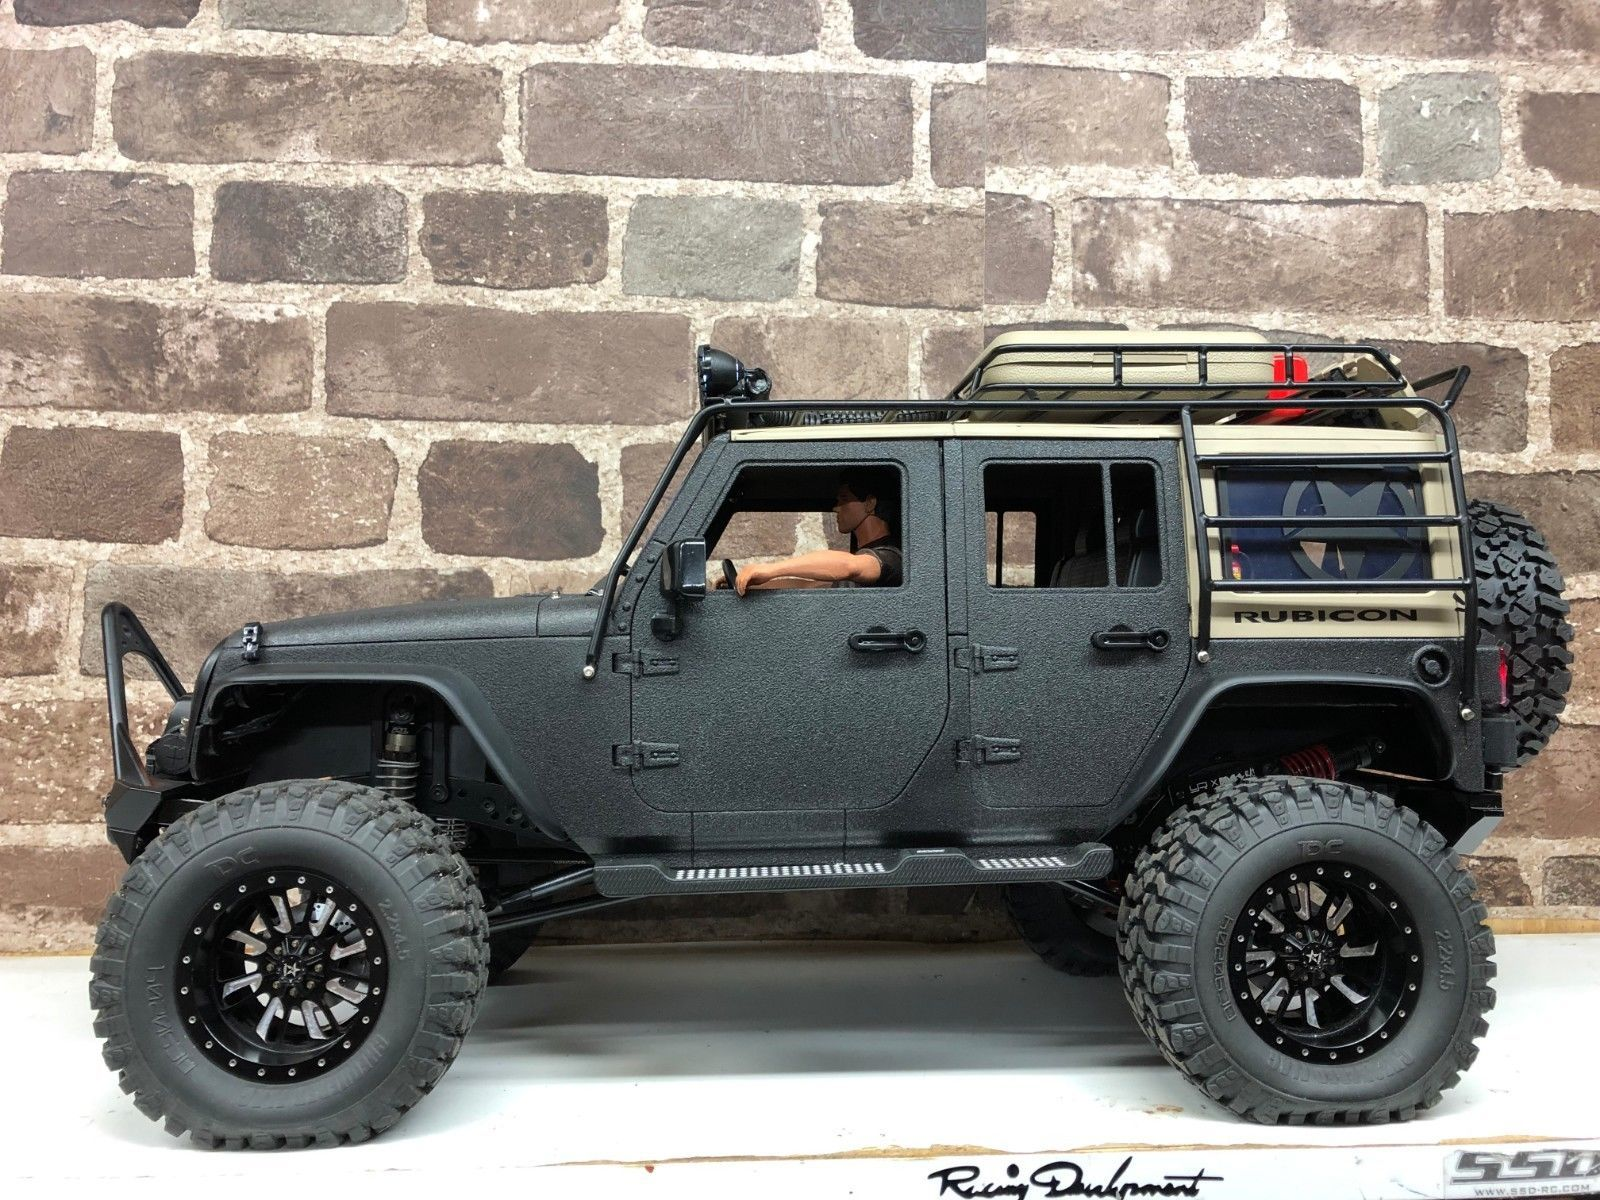 New Bright Jeep Custom Rock Crawler Rtr 1 10 Scale Jeep Axial Rc4wd Radio Controlled Boats Rc Jeep Rc Rock Crawler